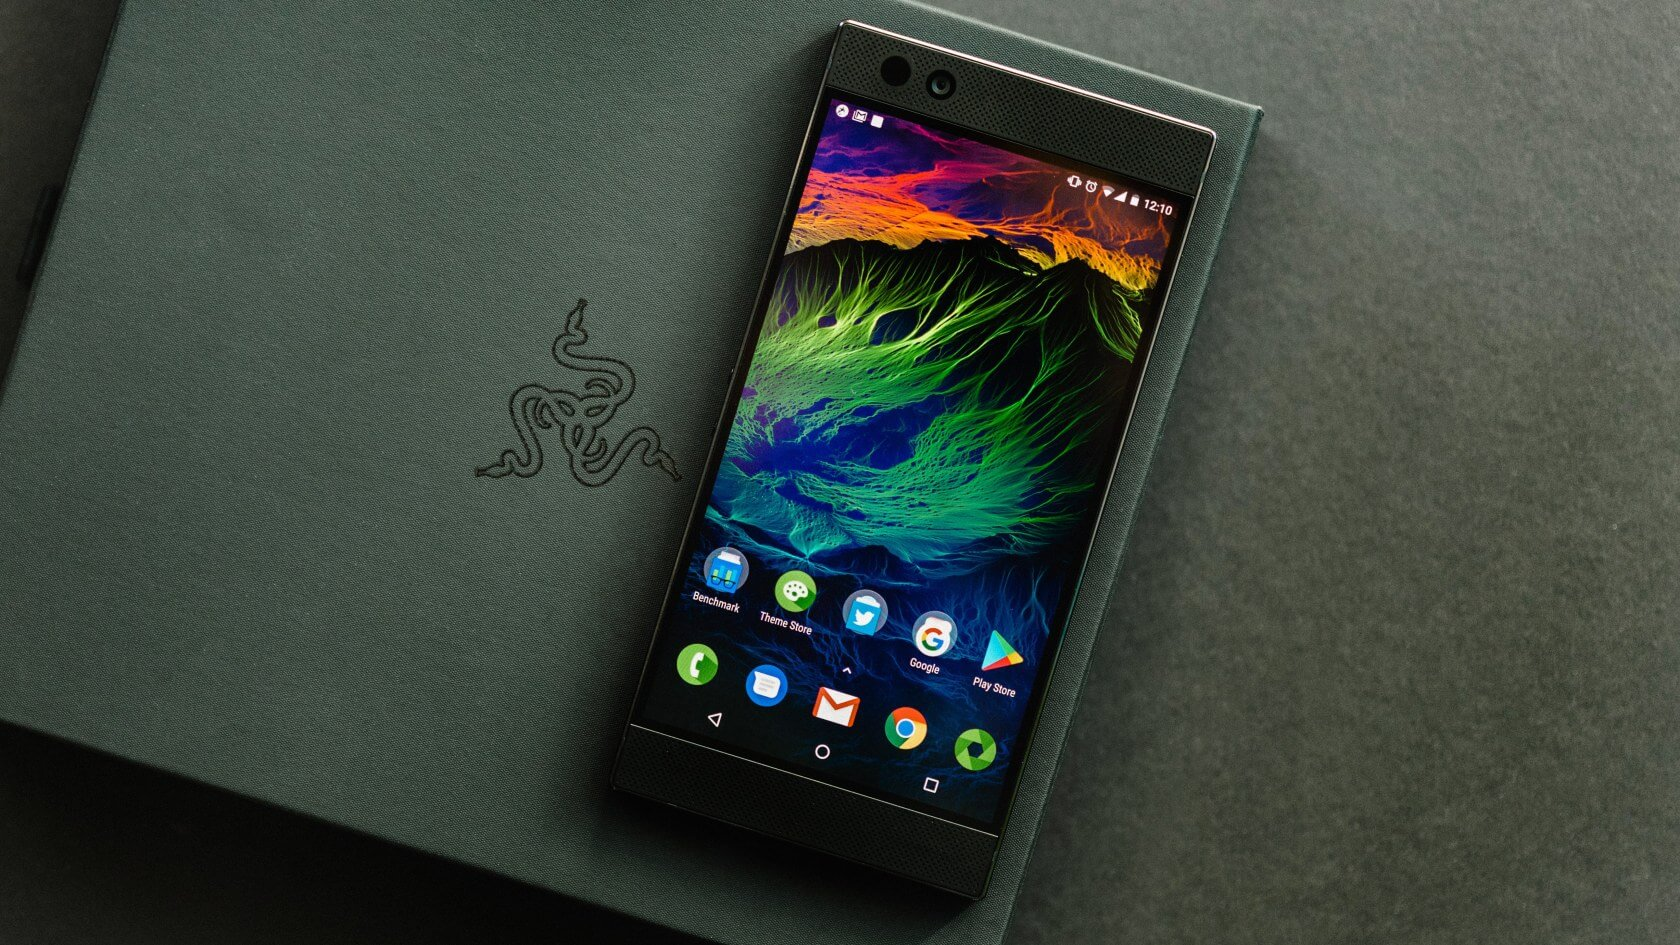 Mobile Phones: Razer Phone 2 brings faster performance, Razer Chroma